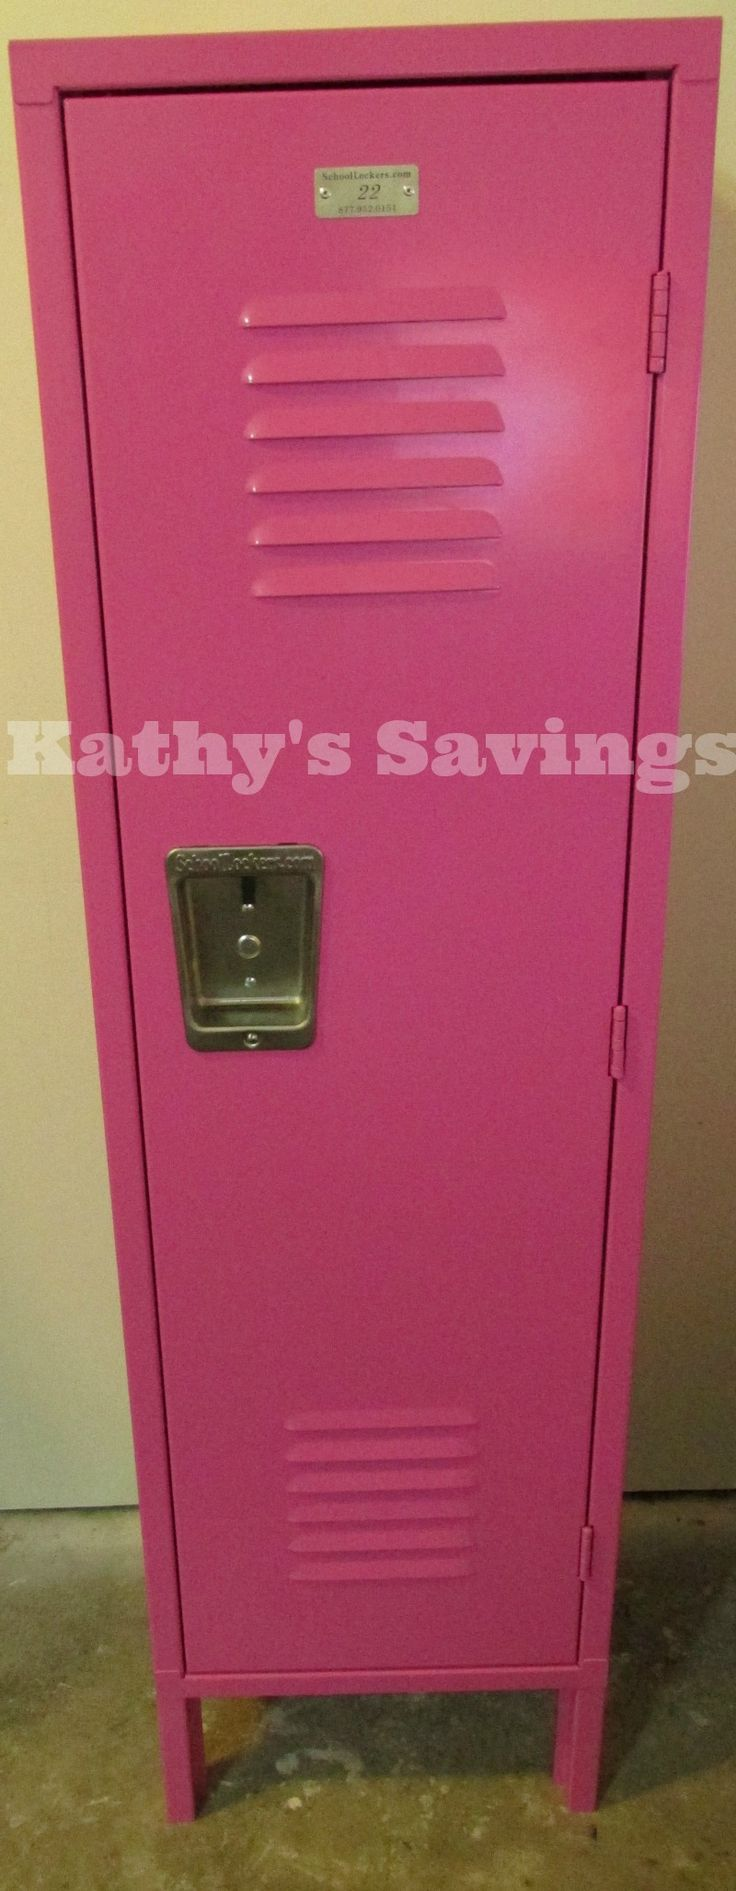 @SchoolLockers.com Thanks for the review from Kathy's Savings!